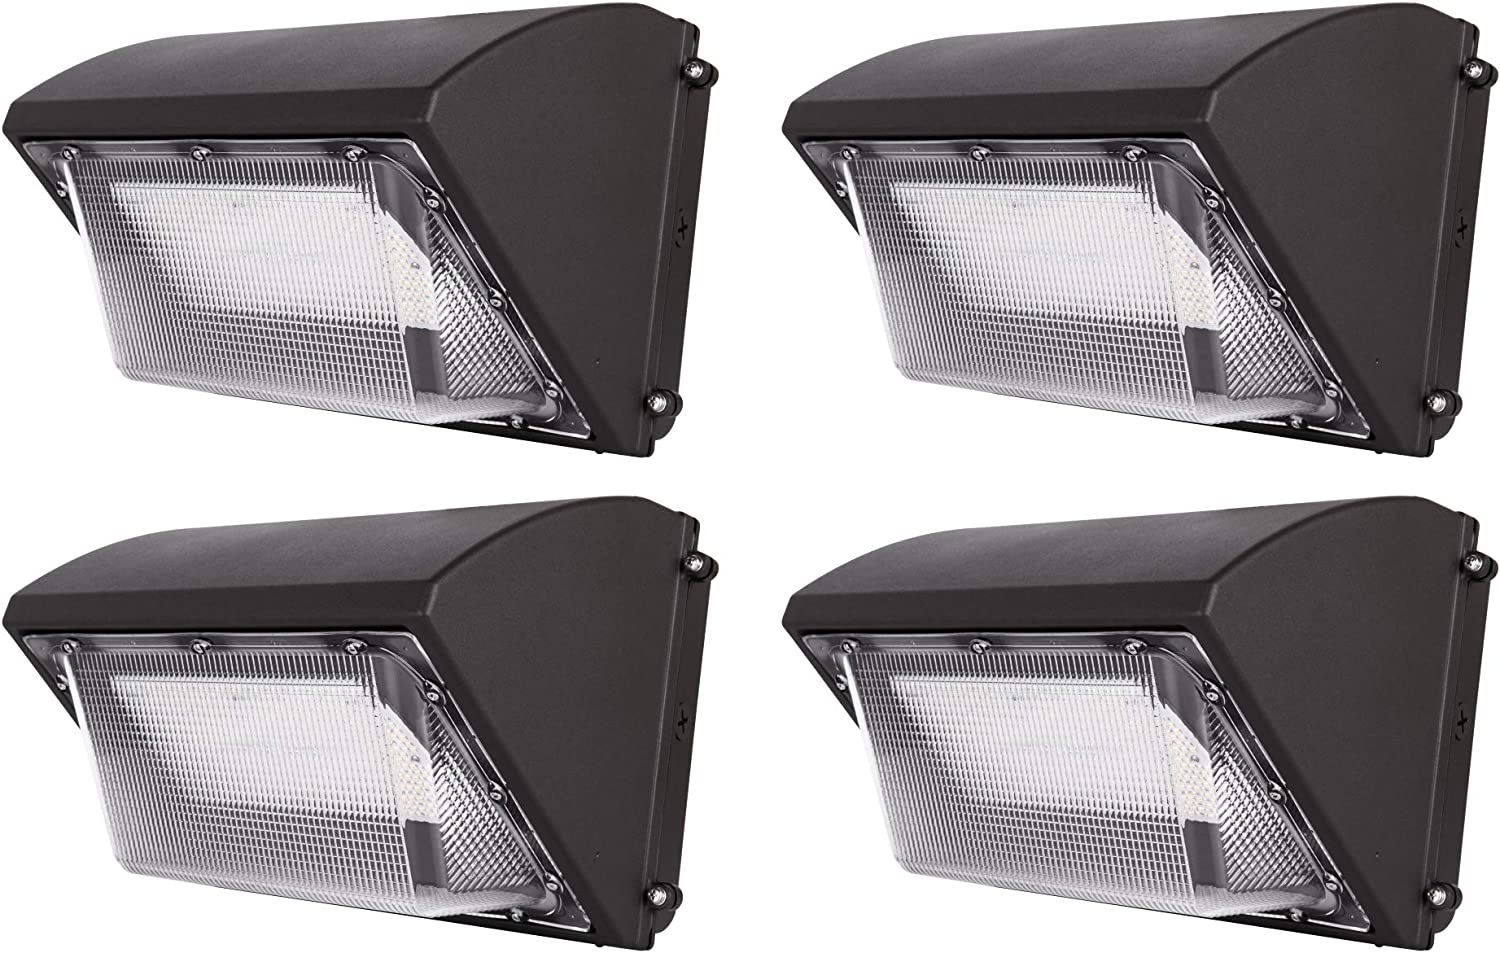 Hyperikon LED Wall Pack, Commercial Outdoor Lighting, UL, DLC, 50 Watts, 4 Pack